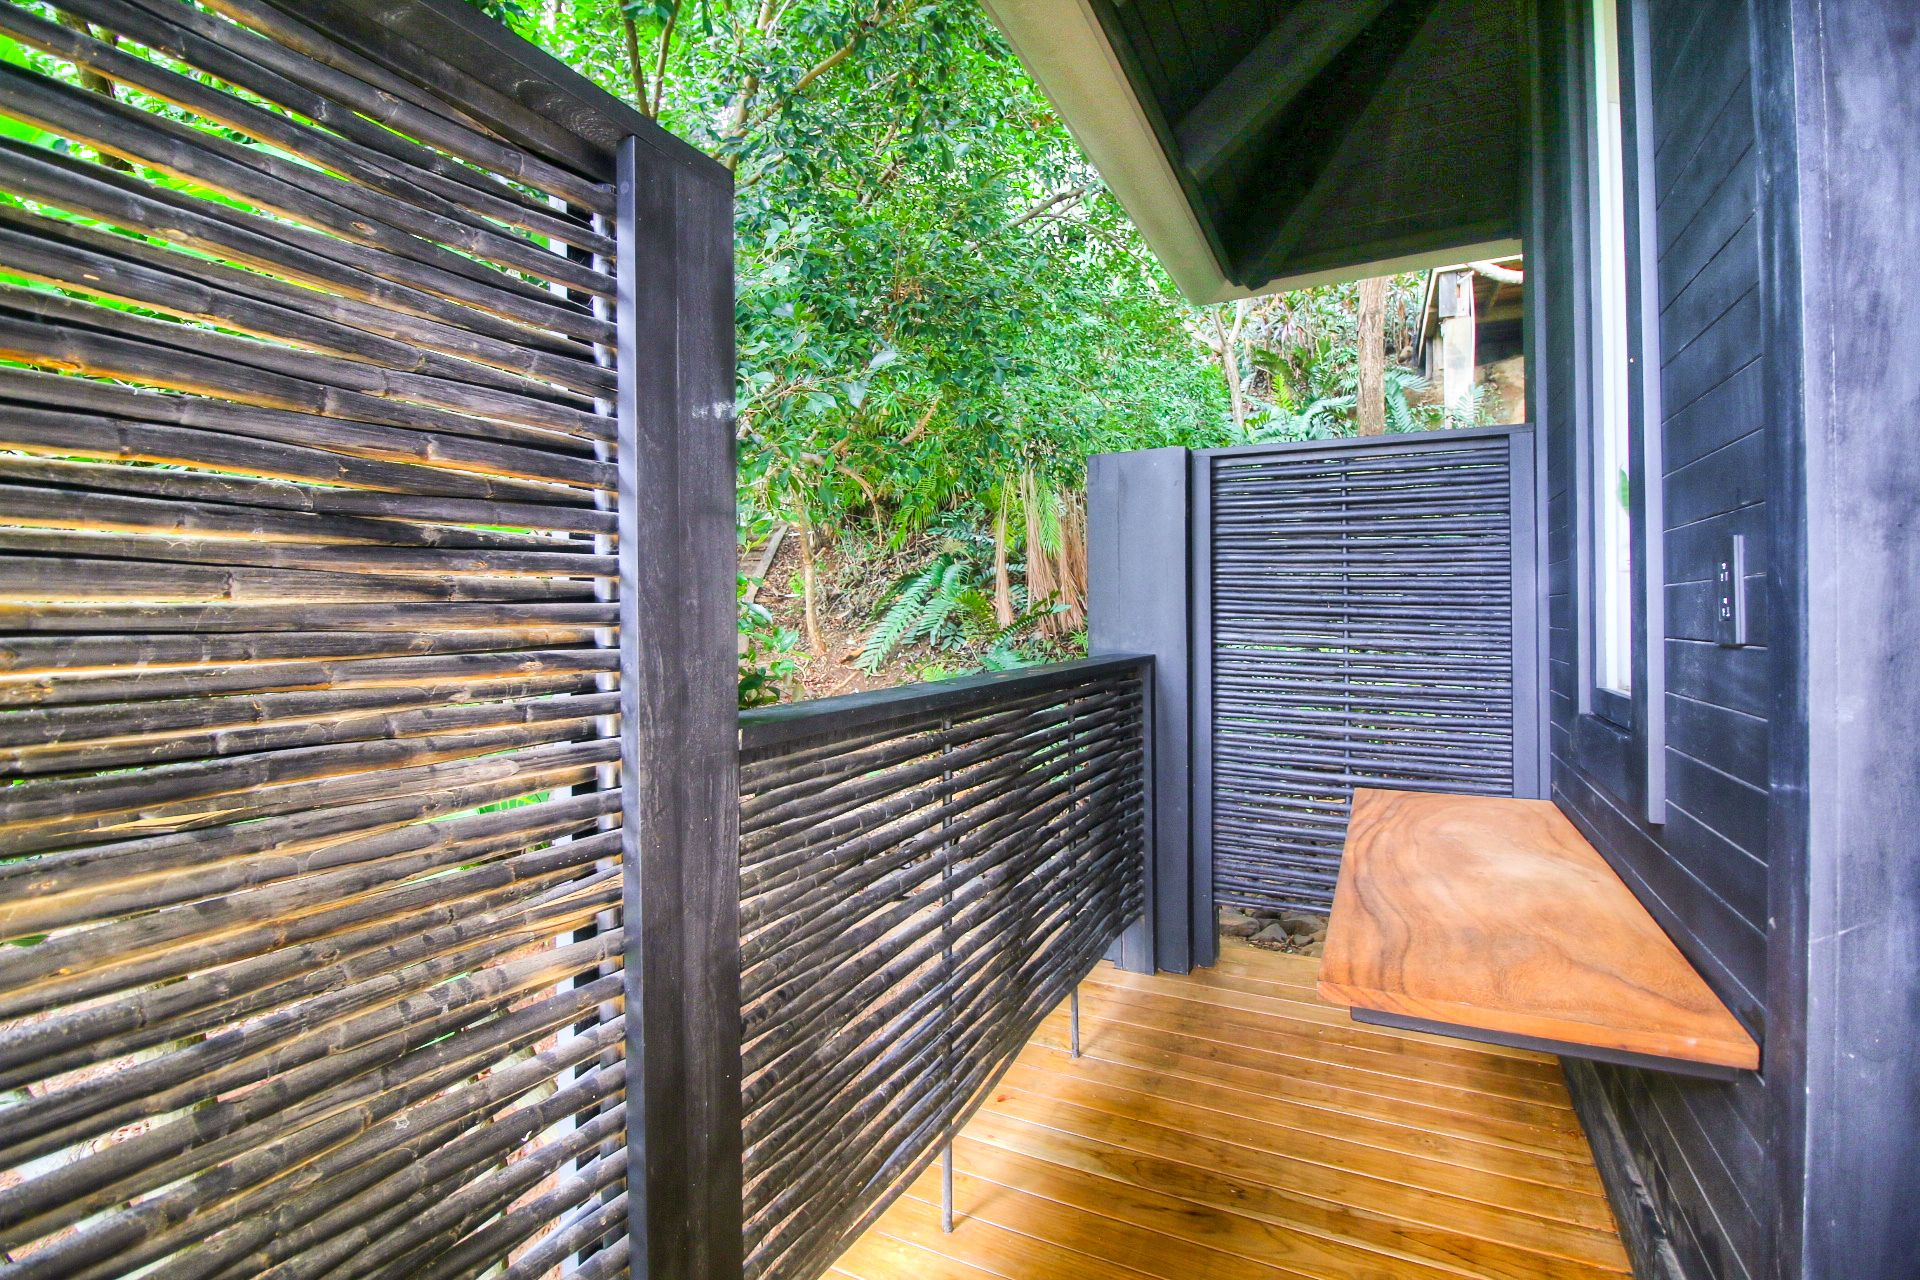 Private outdoor areas form part of individual cottages